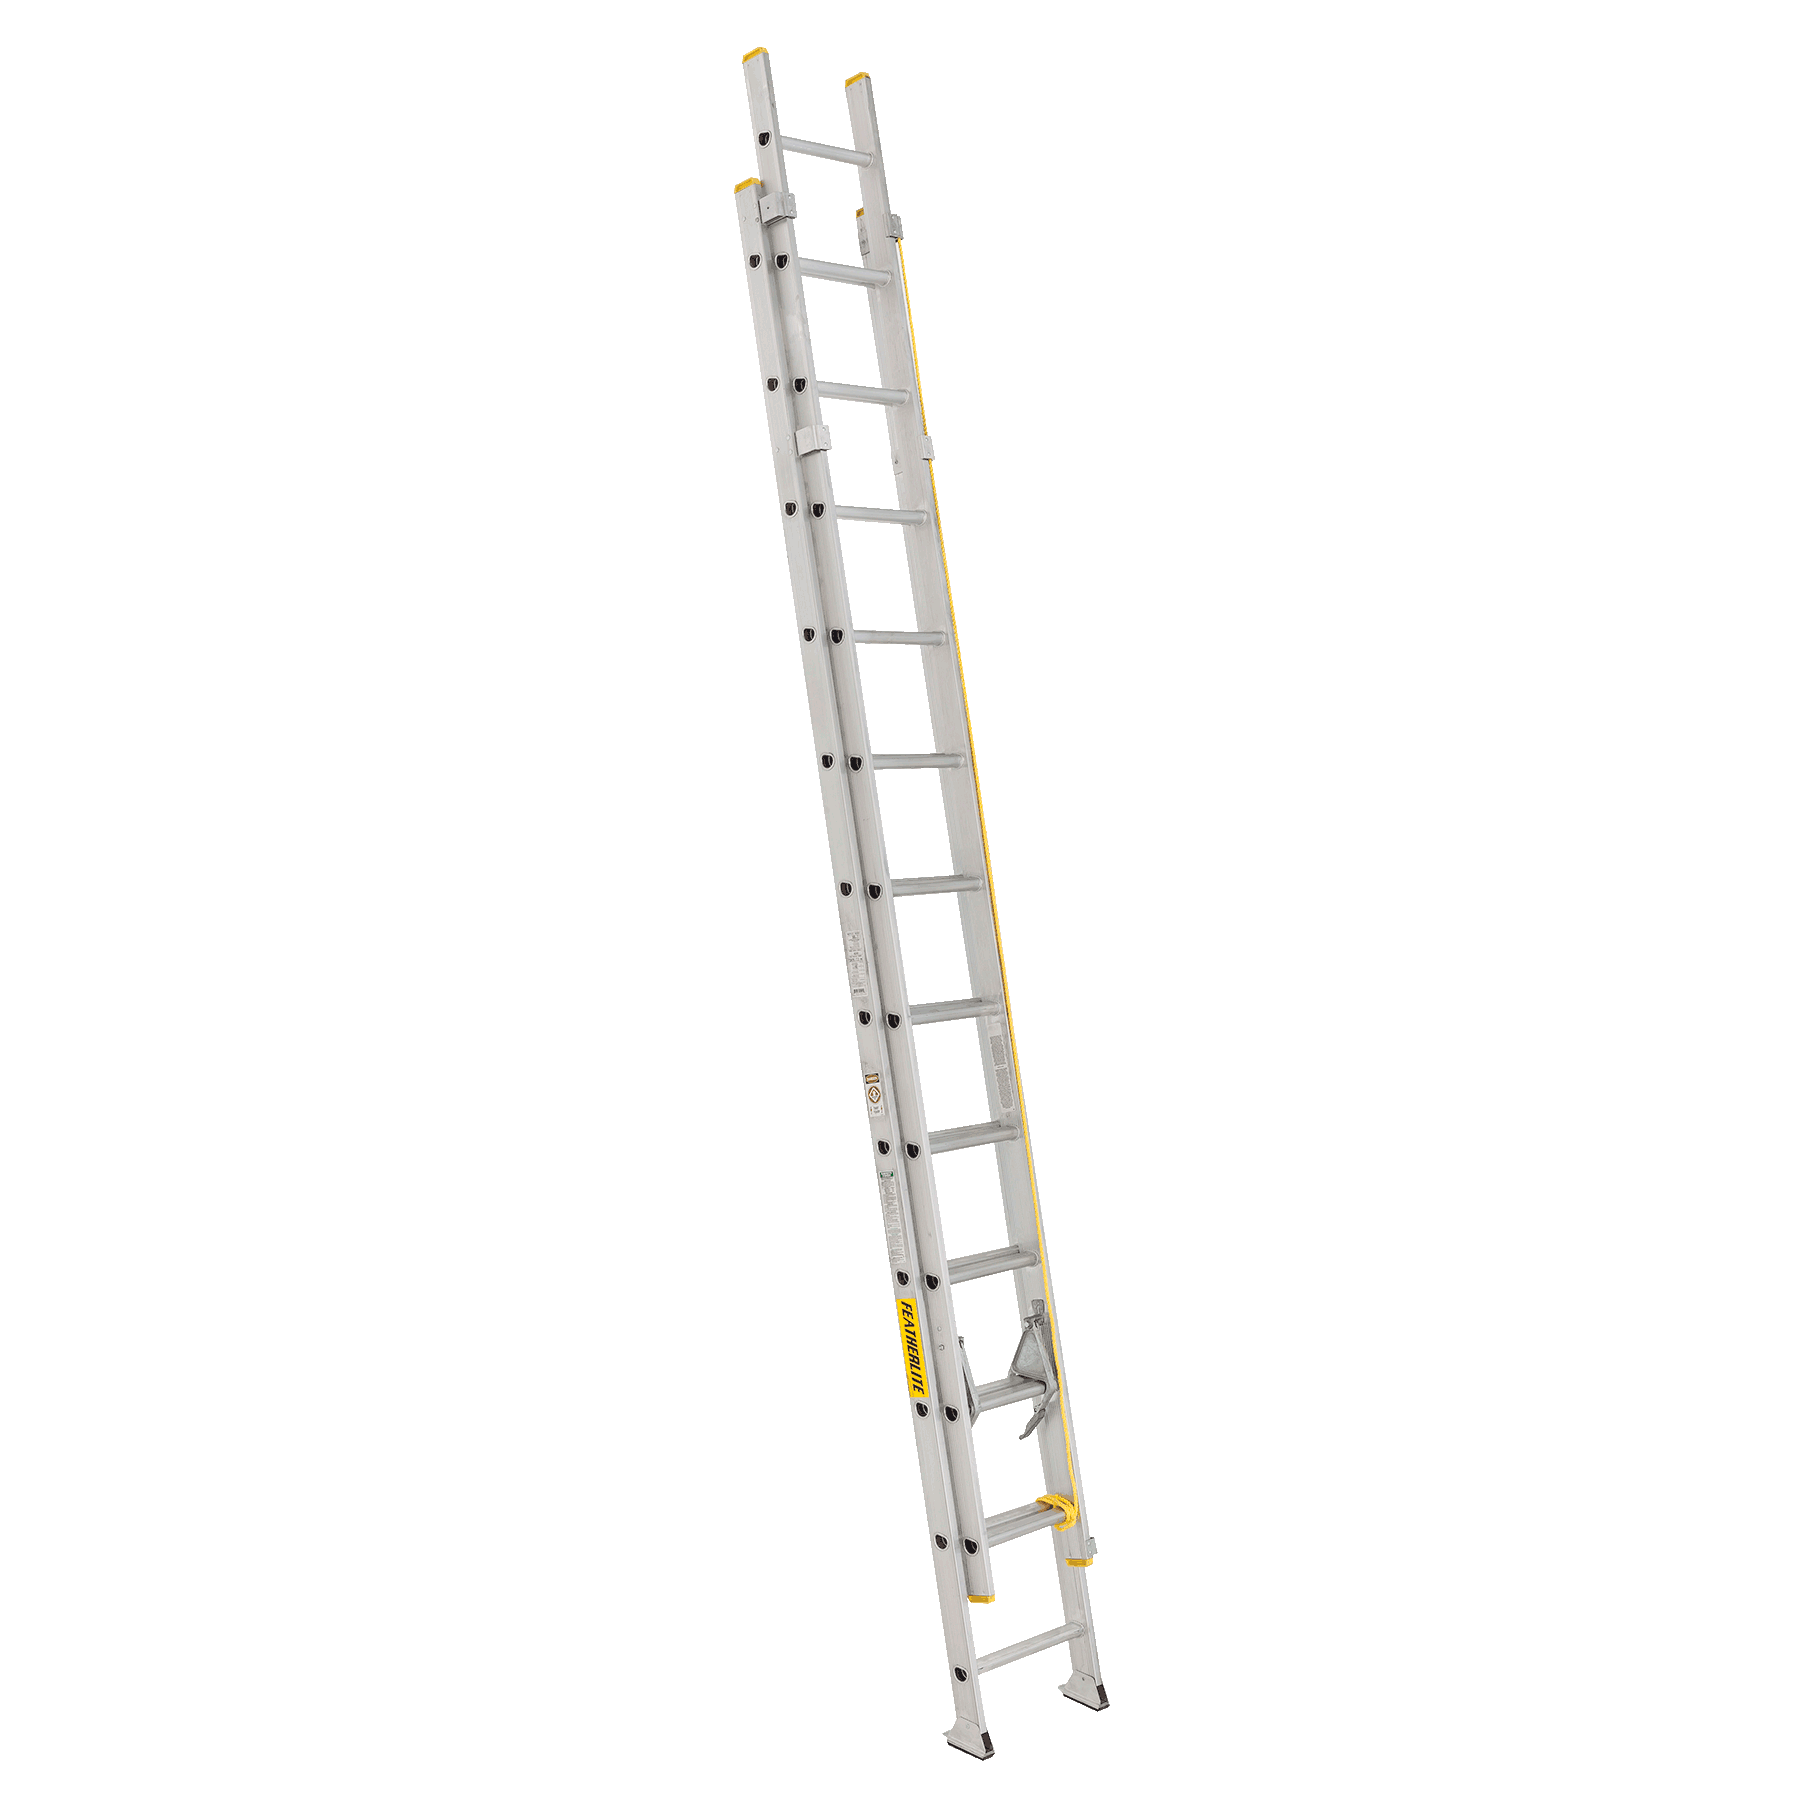 Aluminium ladder 24ft